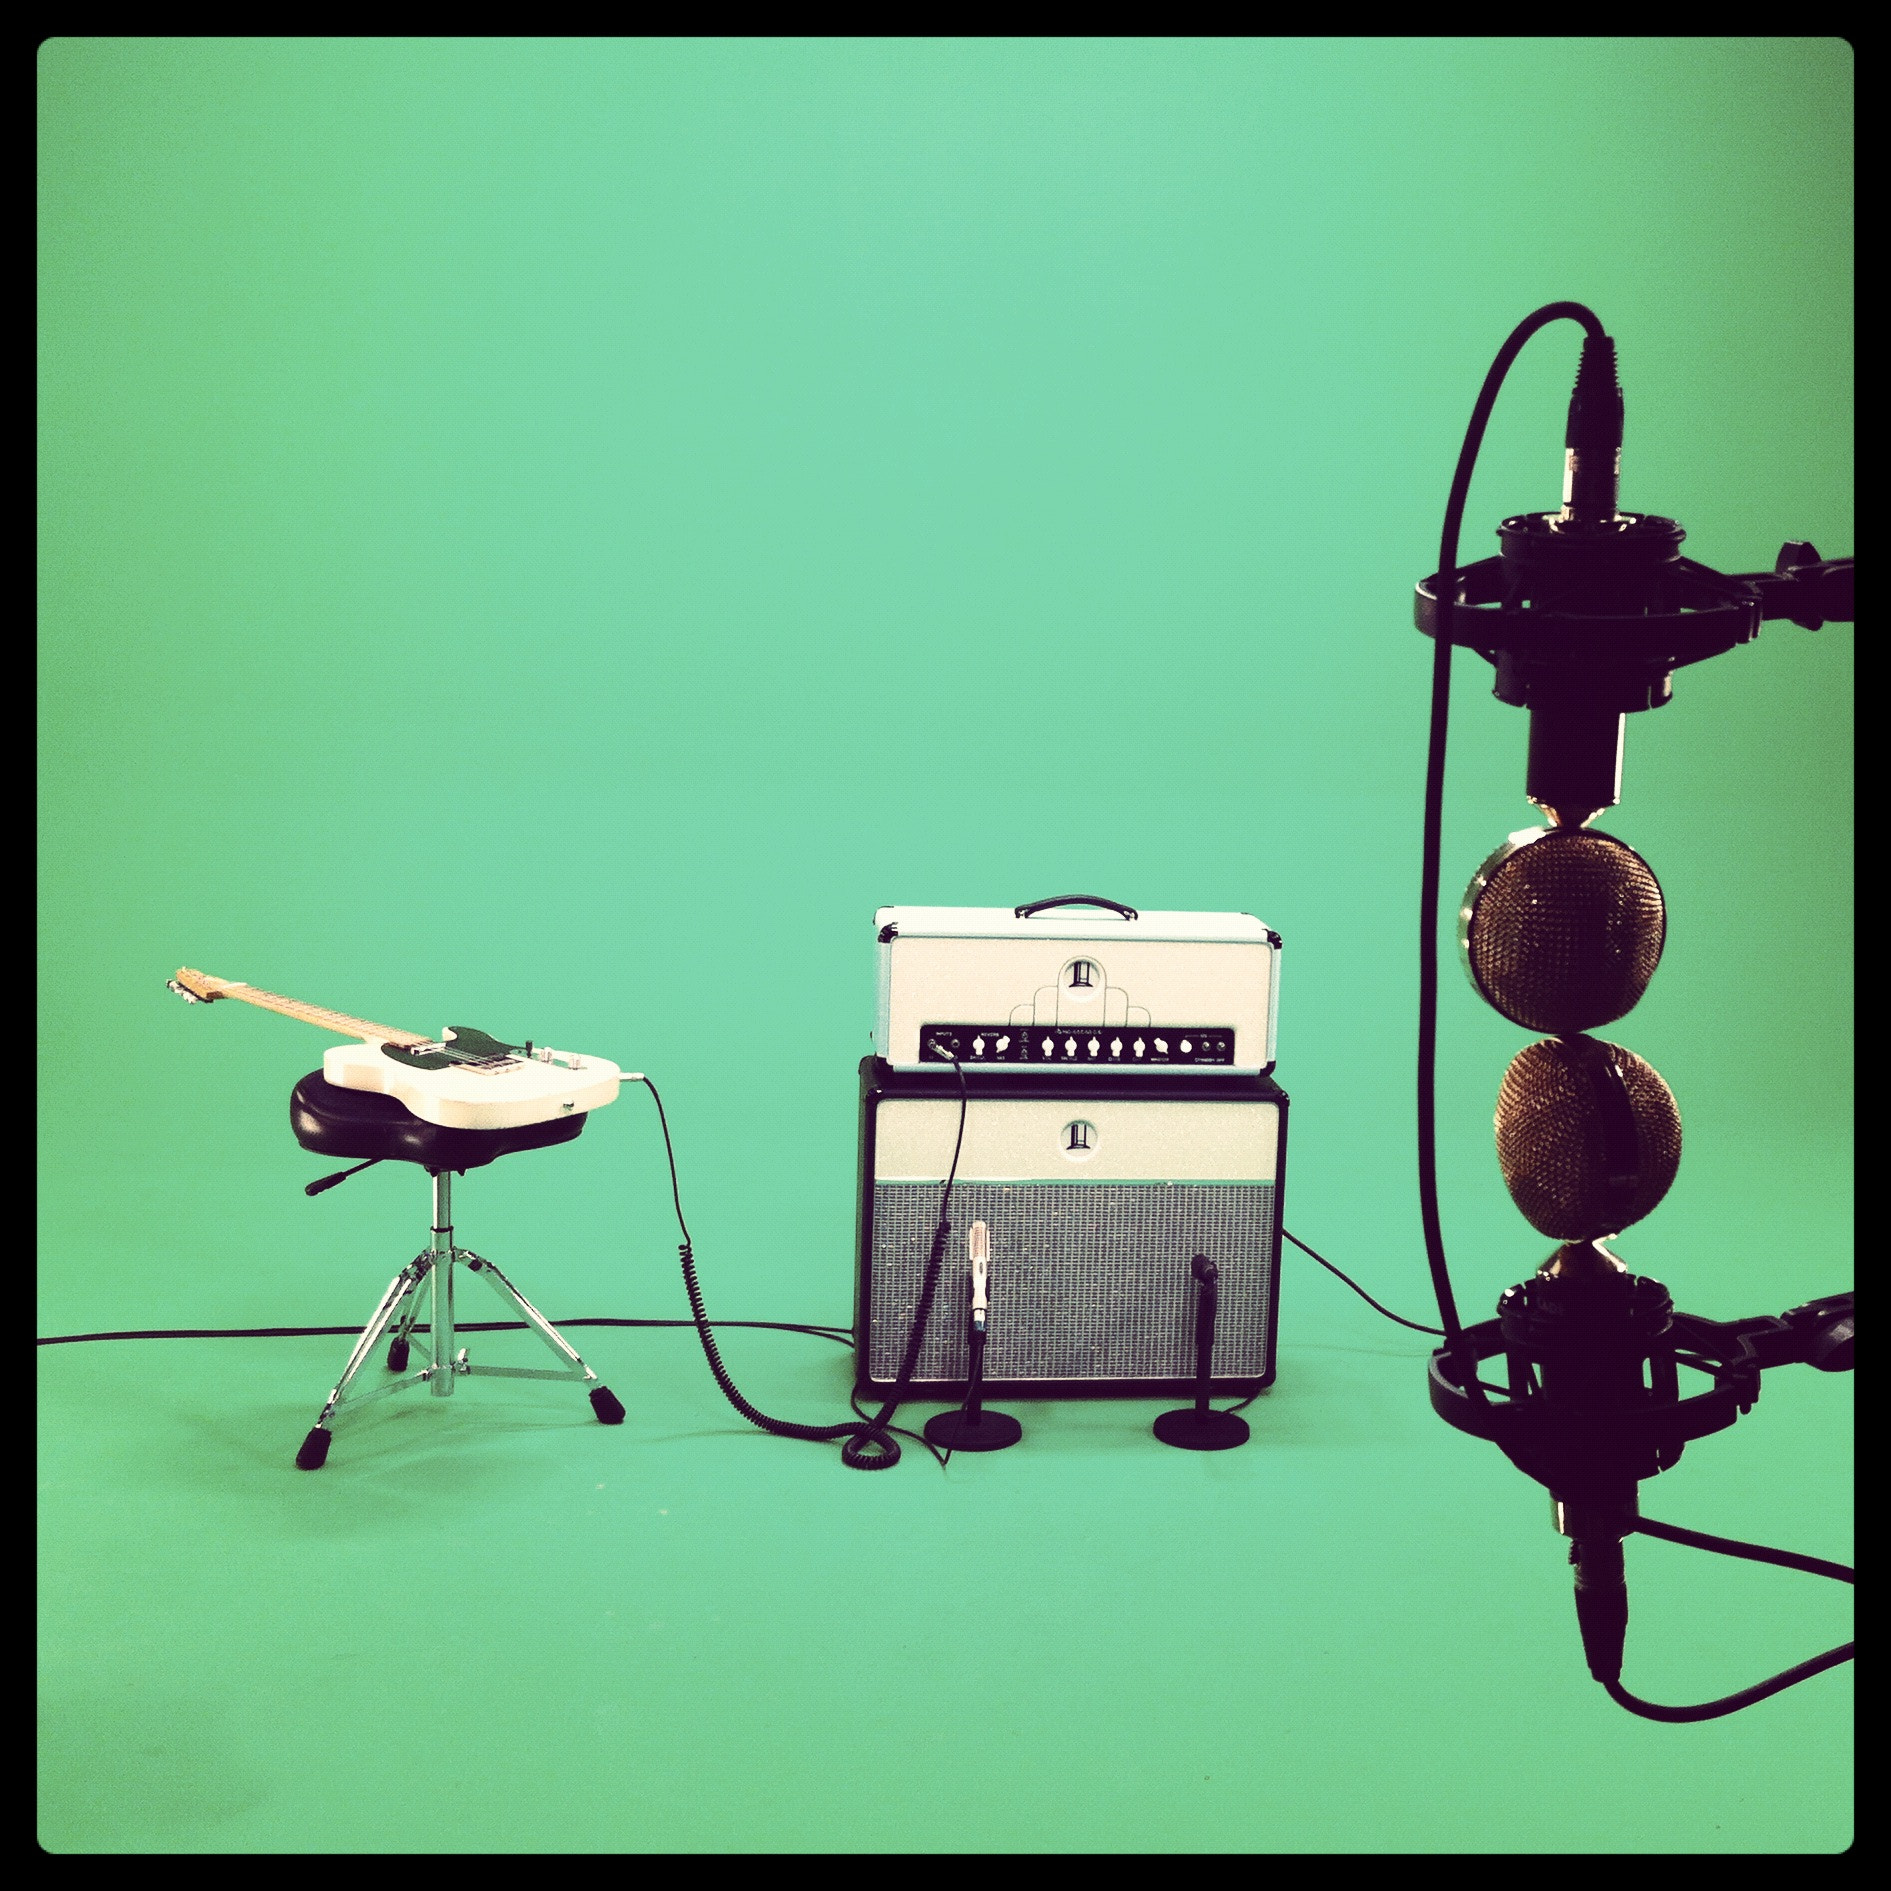 Photograph Guitar, amp and mics on the green screen by David Leclerc on 500px